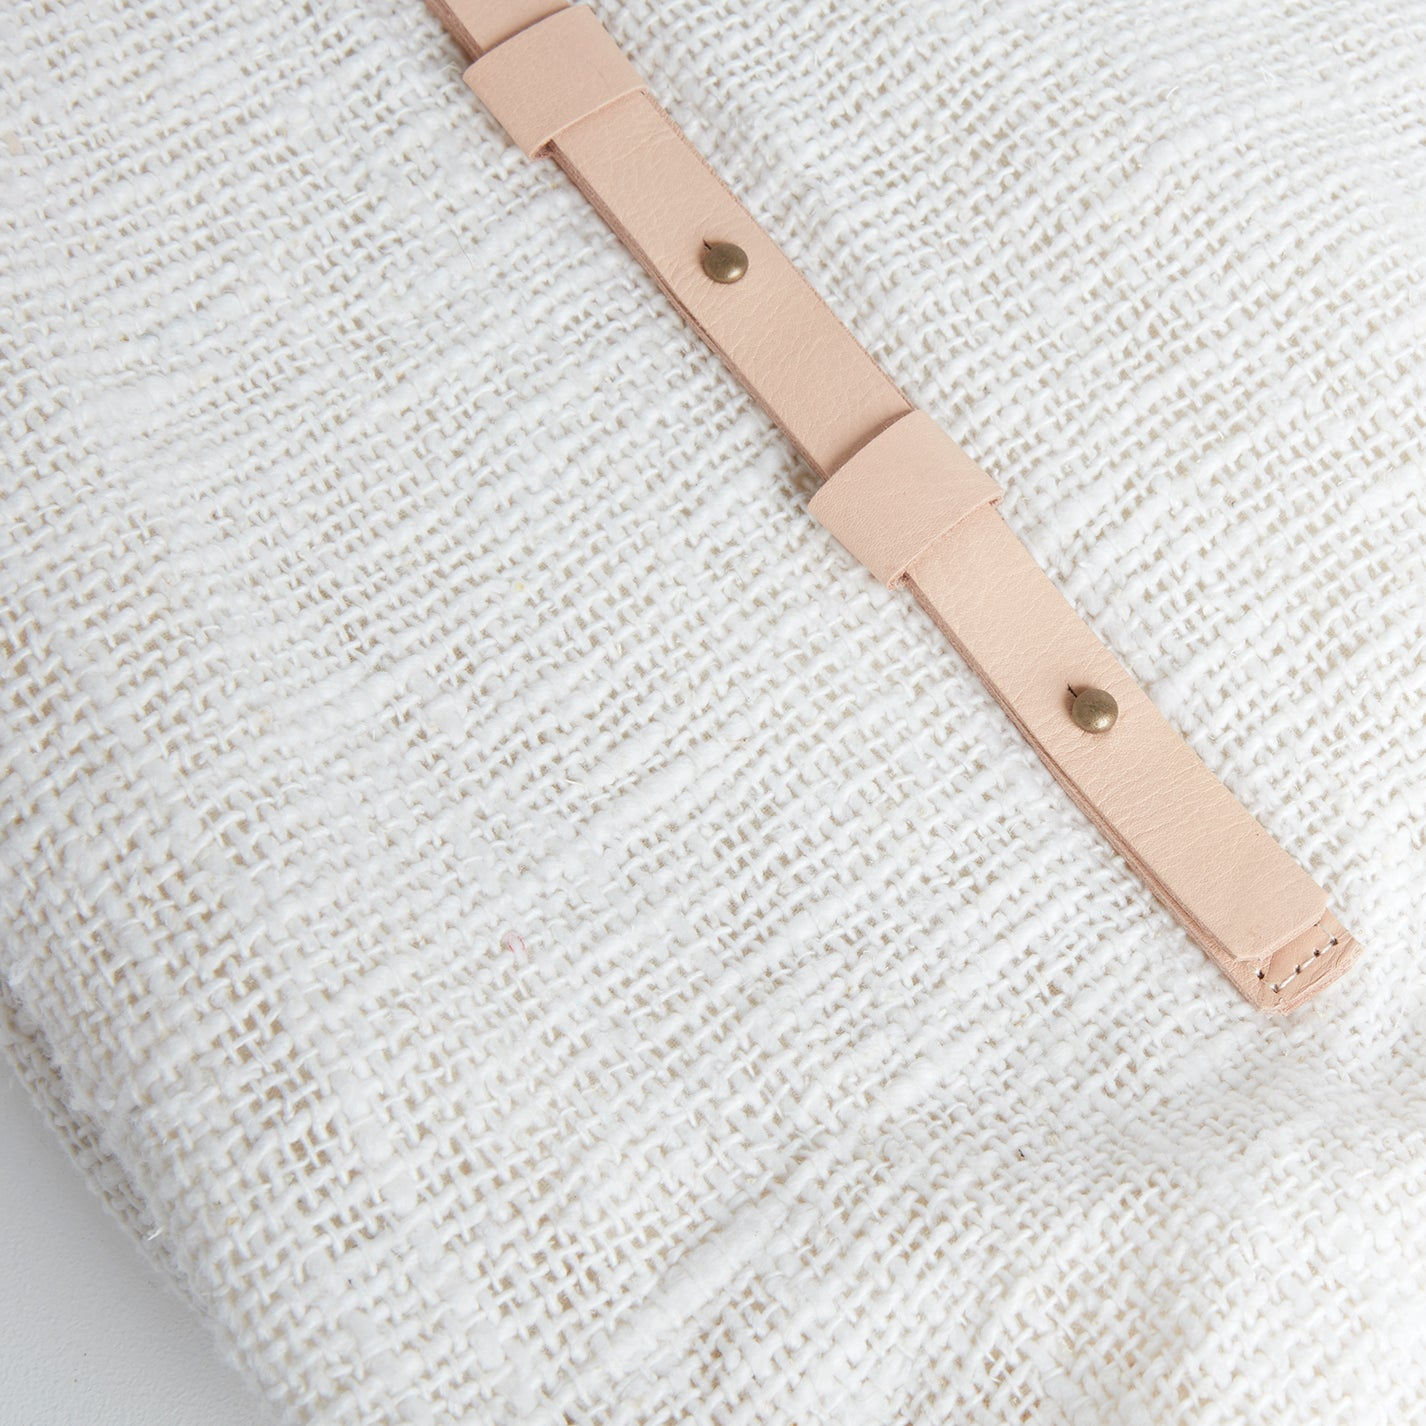 Corsica Linen Style Bag, Detail | Betsy & Floss